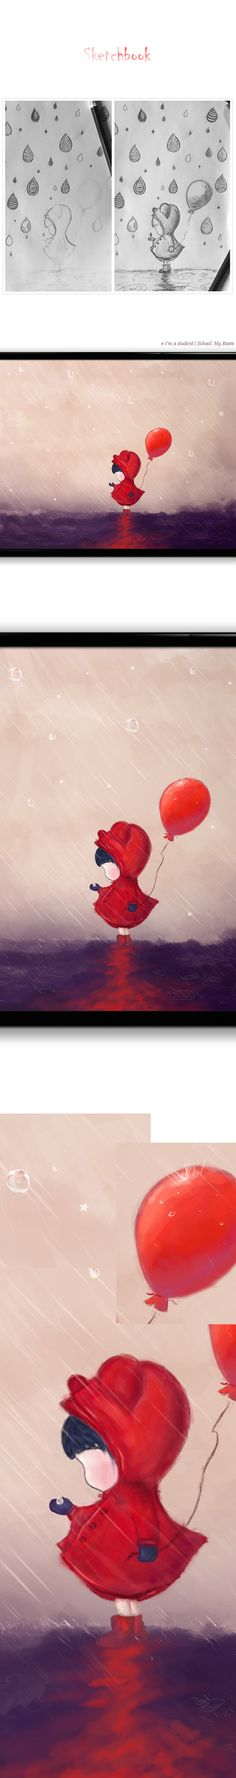 Girl with a red balloon .. . on Wacom Gallery